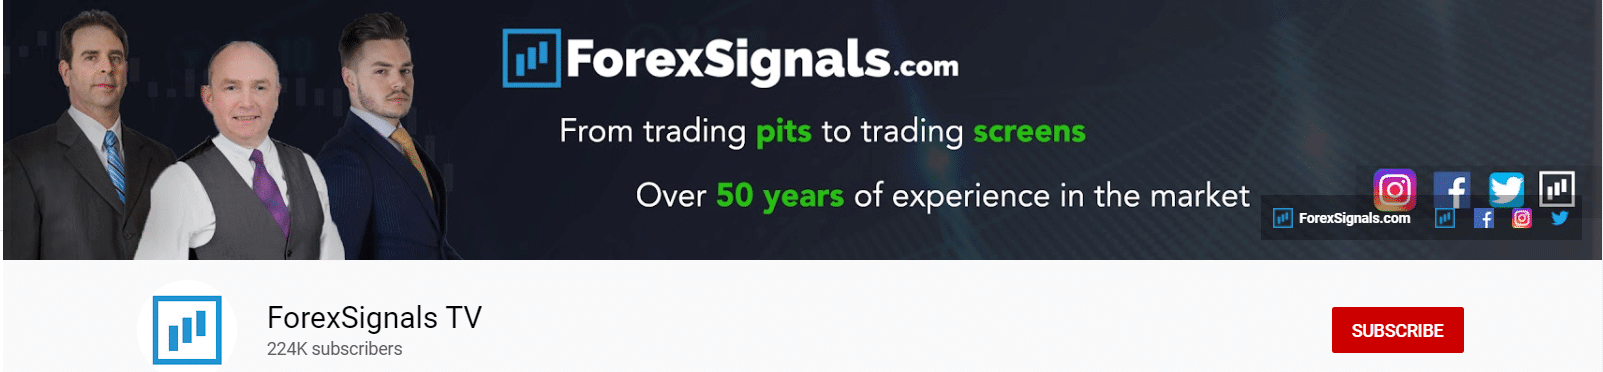 top 10 forex youtube channels - ForexSignals TV